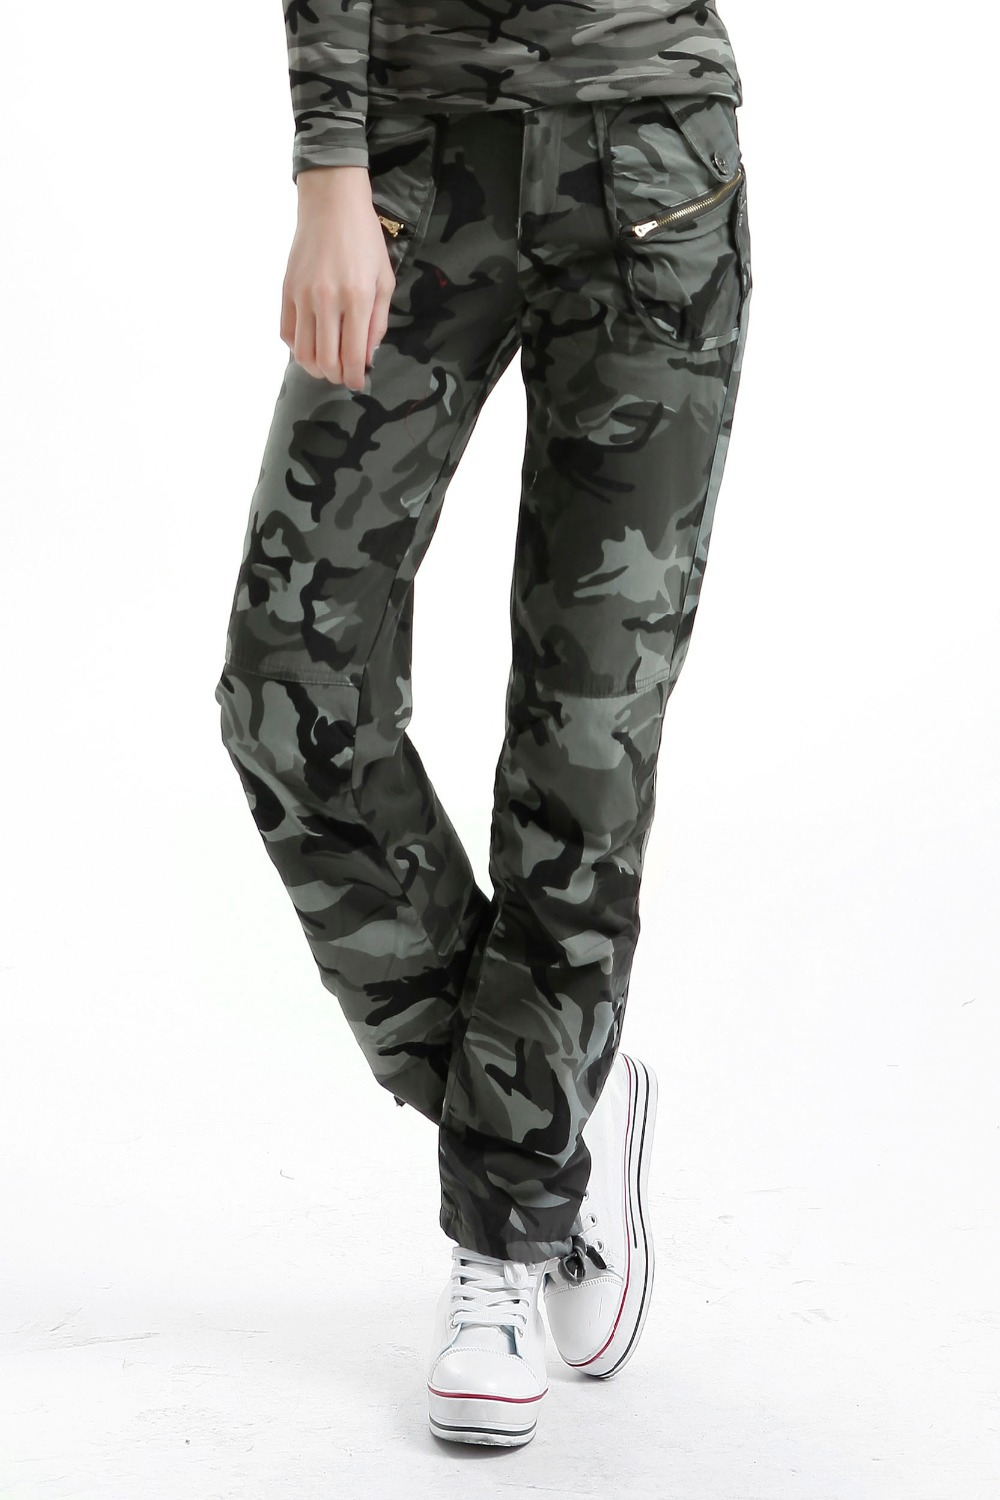 ebfe1f4e24cc3 Get Quotations · Free Shipping New Hot women camo pants for women army  fatigue pencil pants camouflage skinny jeans